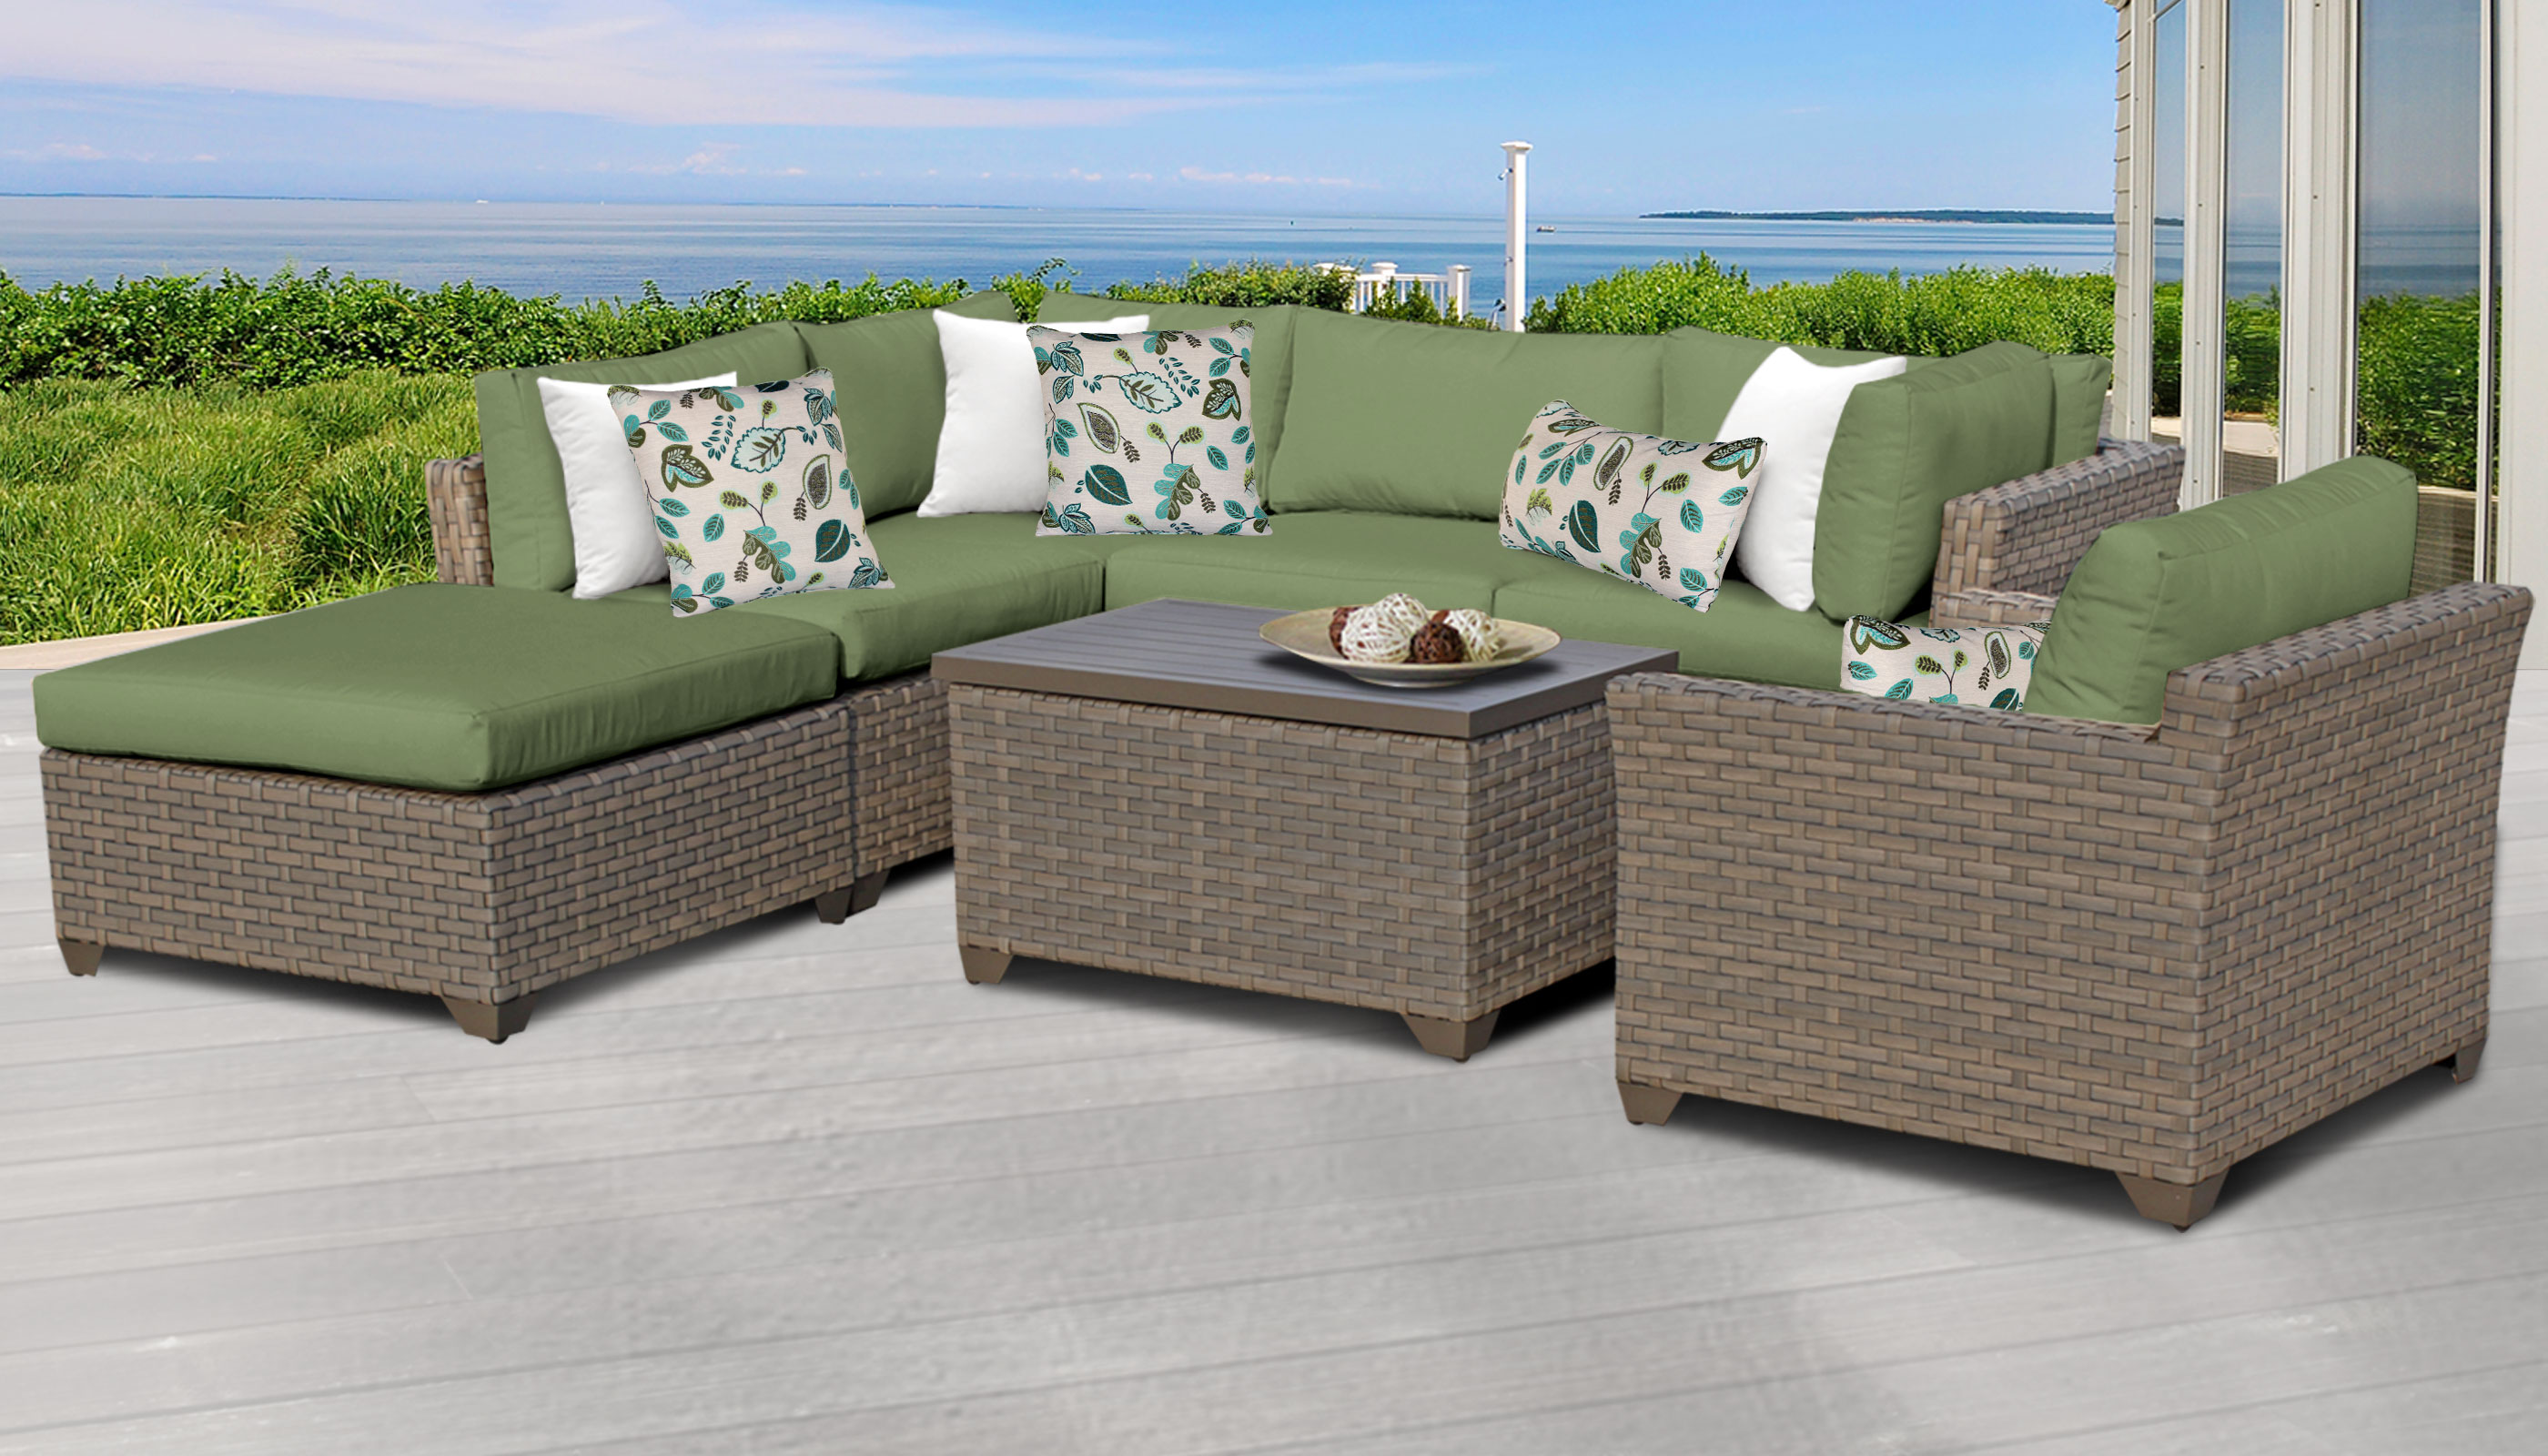 Monterey 7 piece outdoor wicker patio furniture set 07d for Outdoor furniture 7 piece